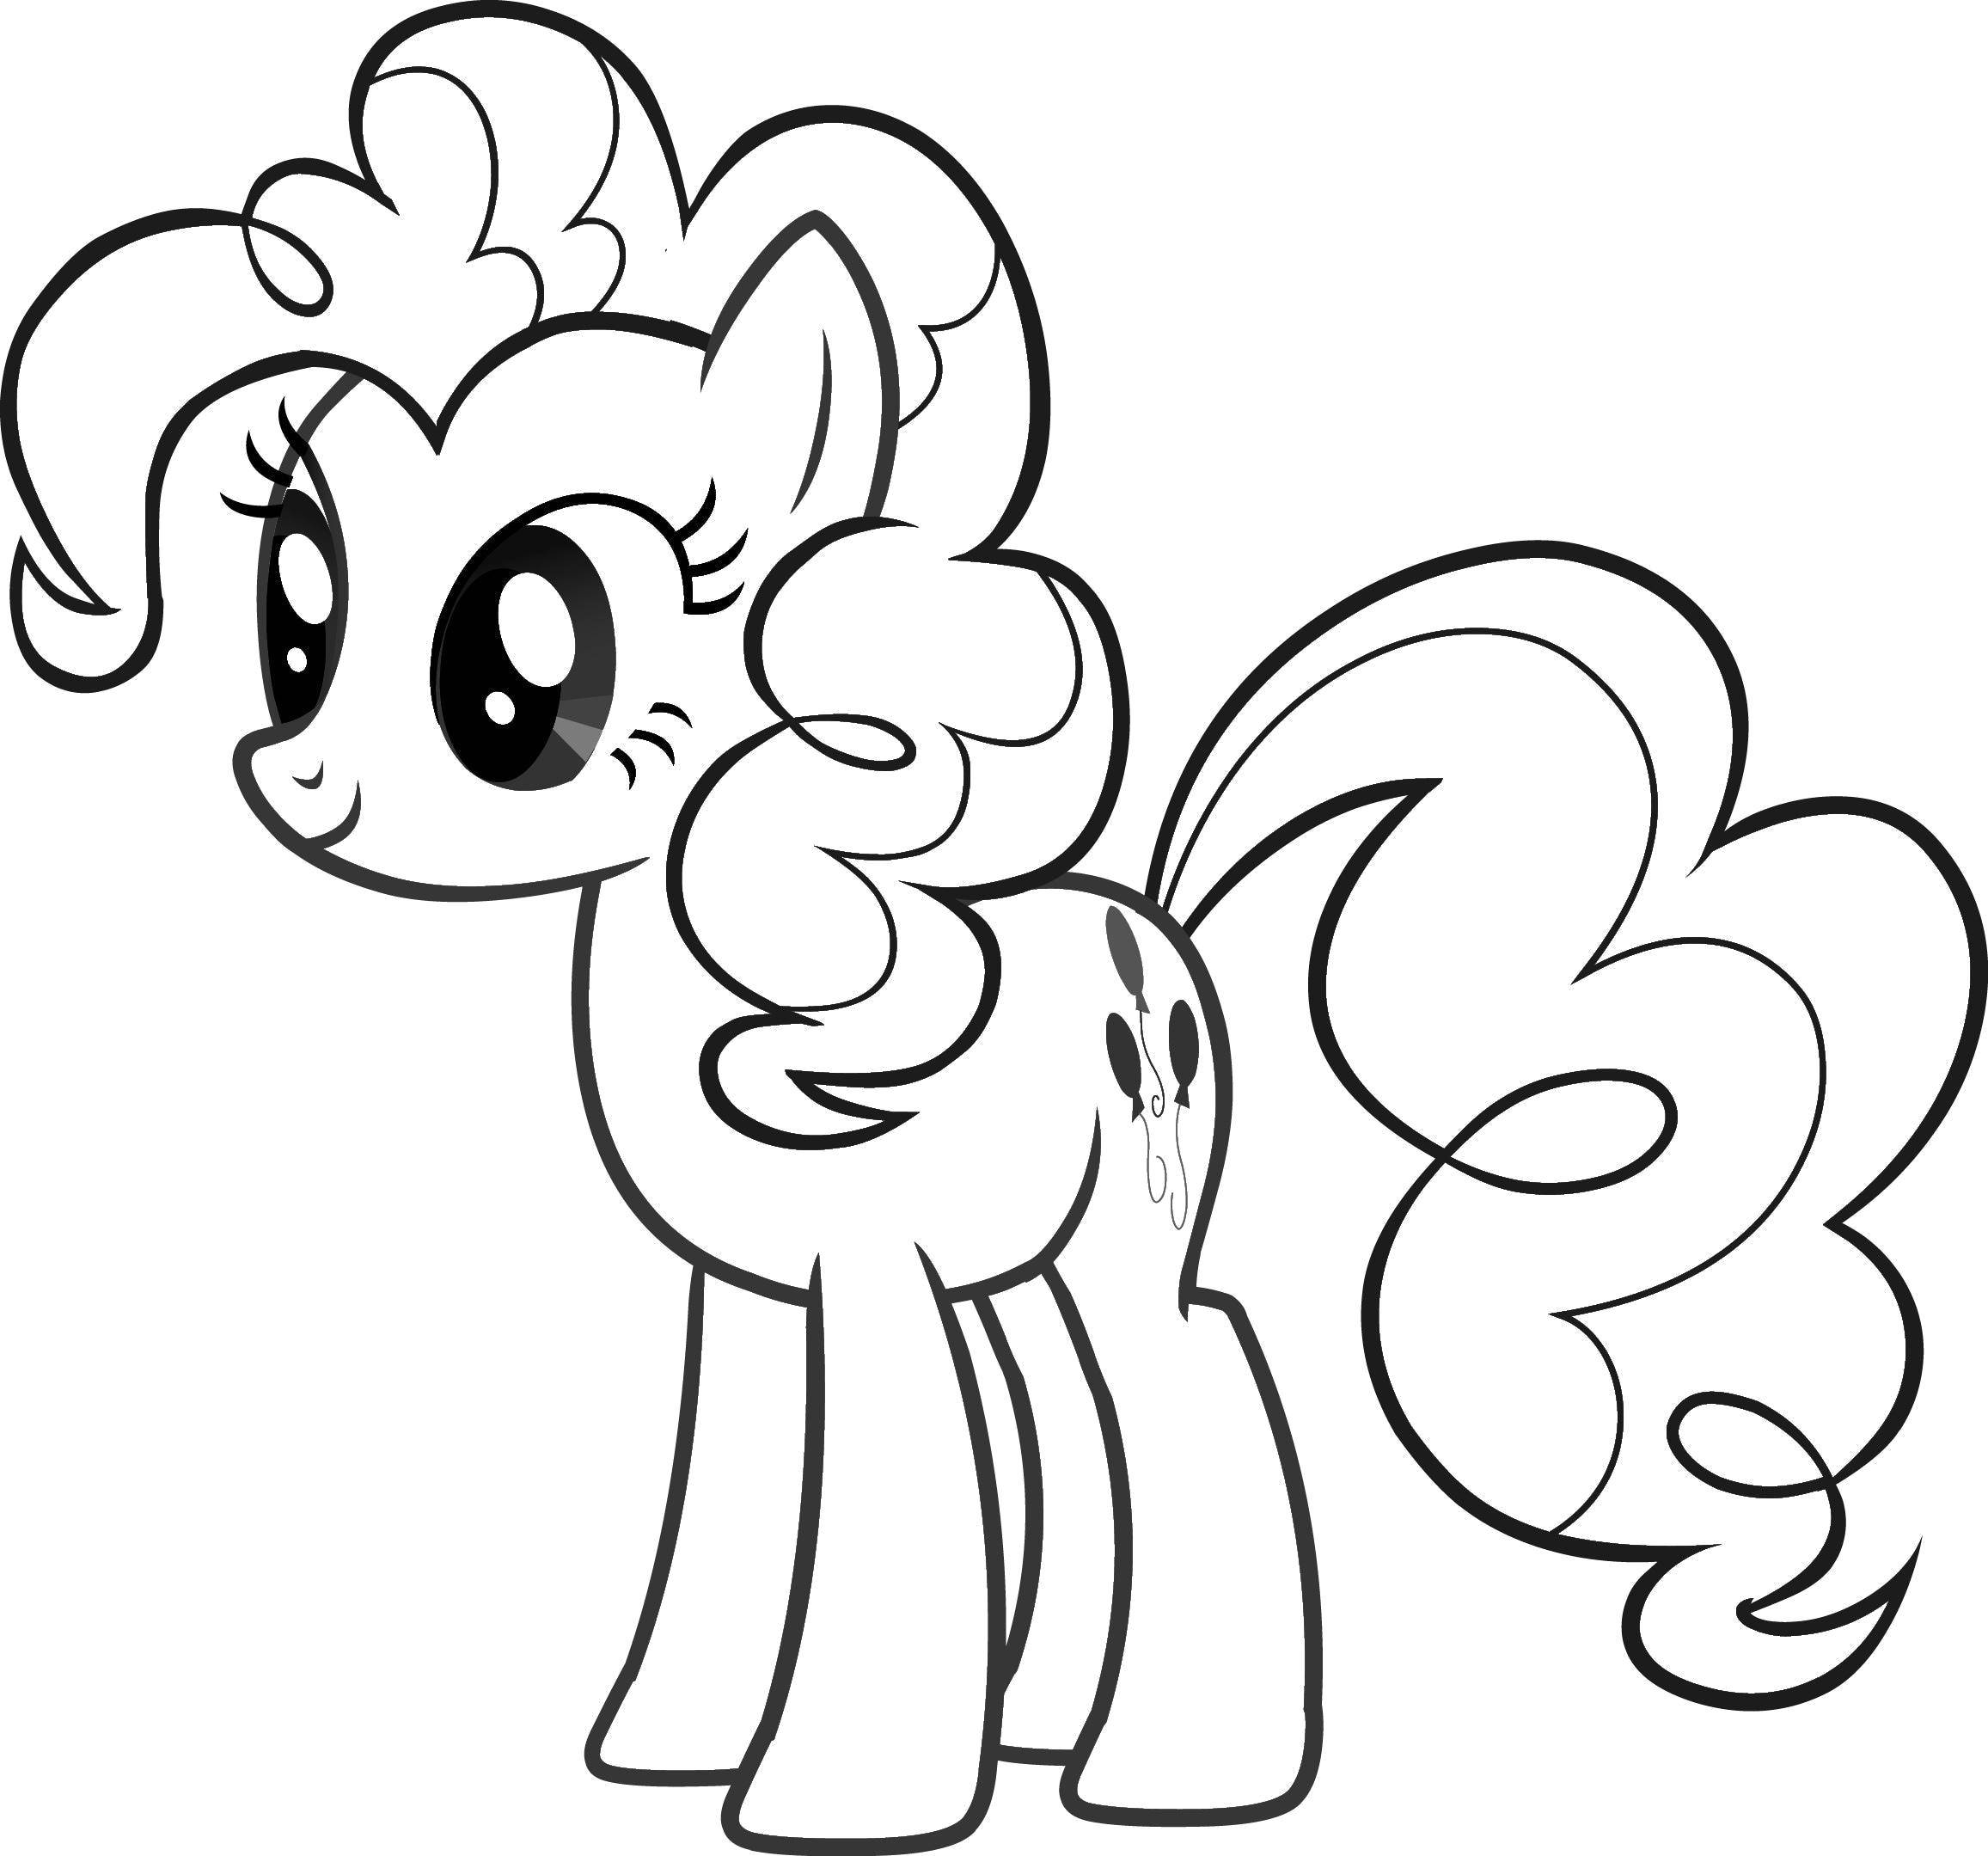 Coloring Ponies from my little pony  Download Pony, My little pony ,.  Print